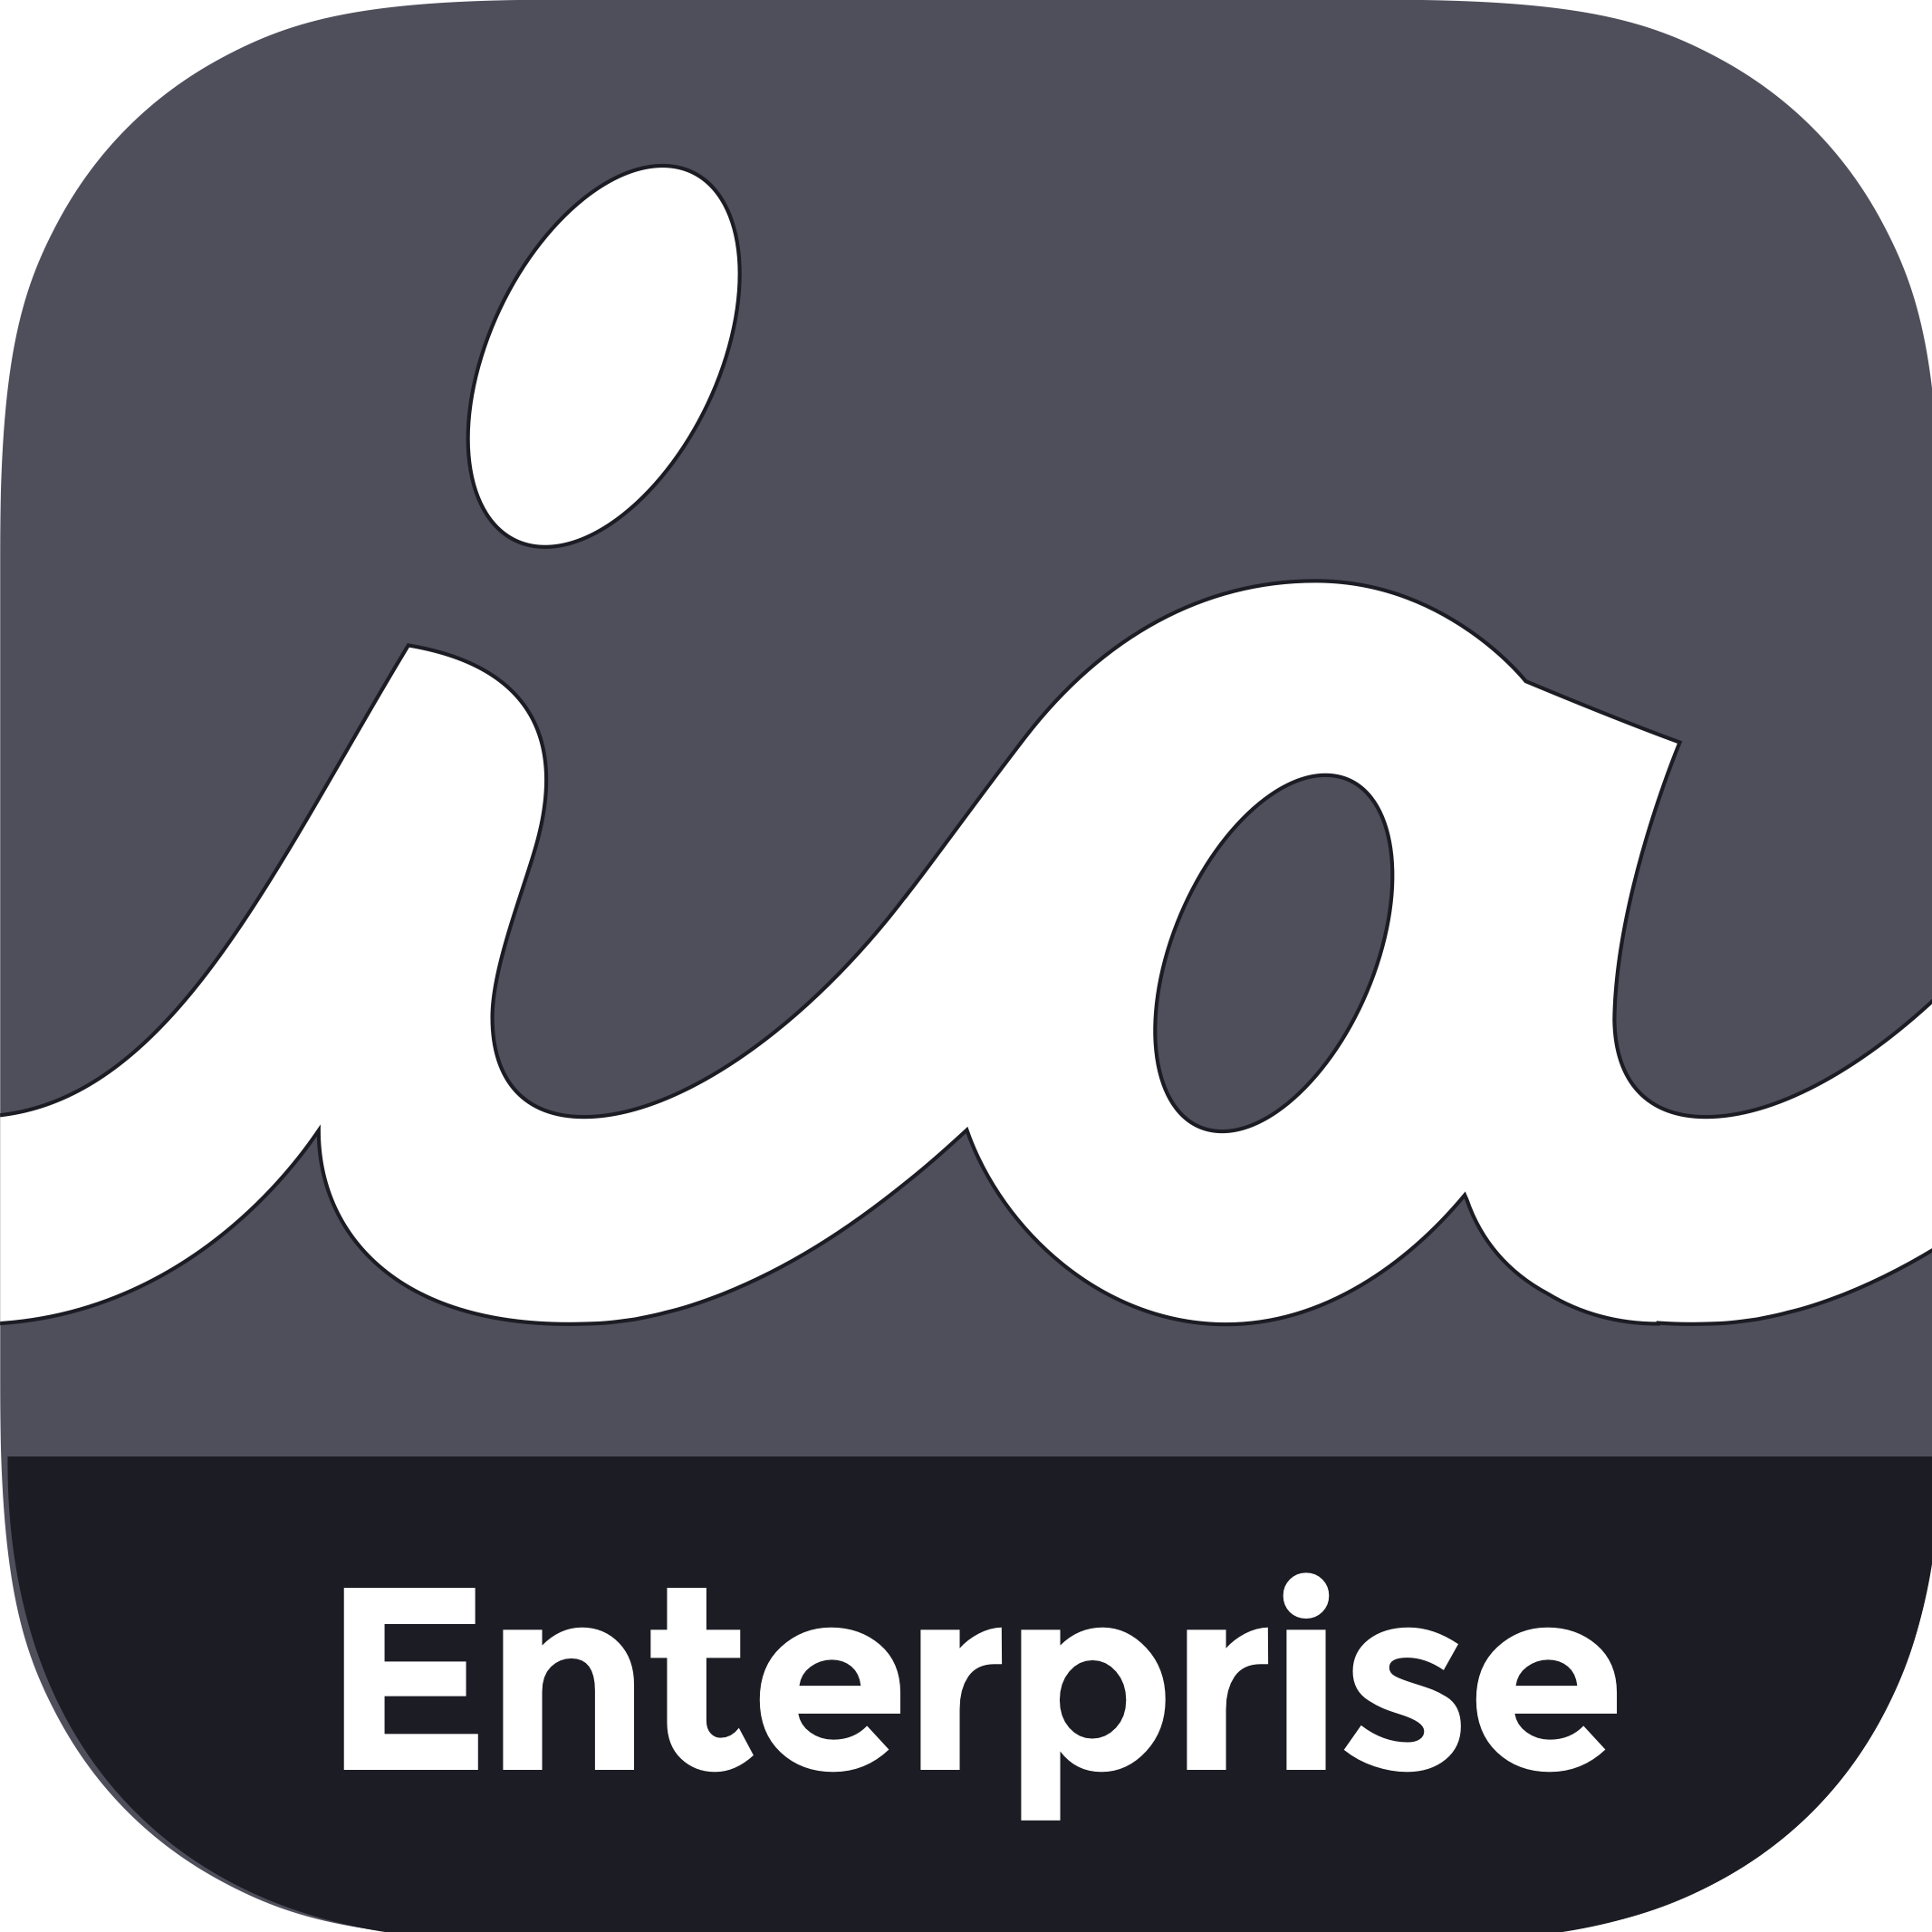 Marketplace for Enterprise Software